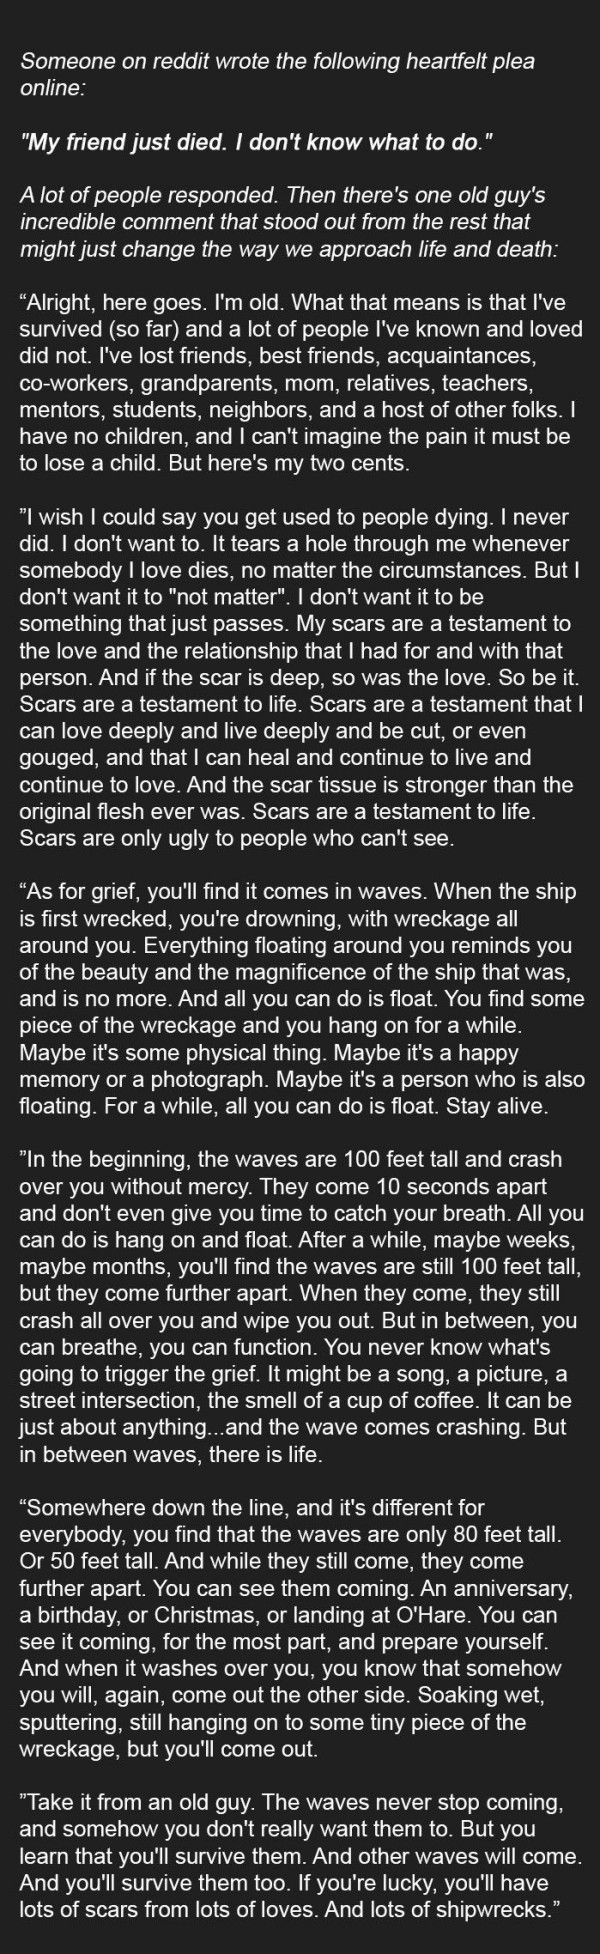 Person Asks Online For Advice On How To Deal With Grief. This Reply Is Incredible. | That Eric Alper